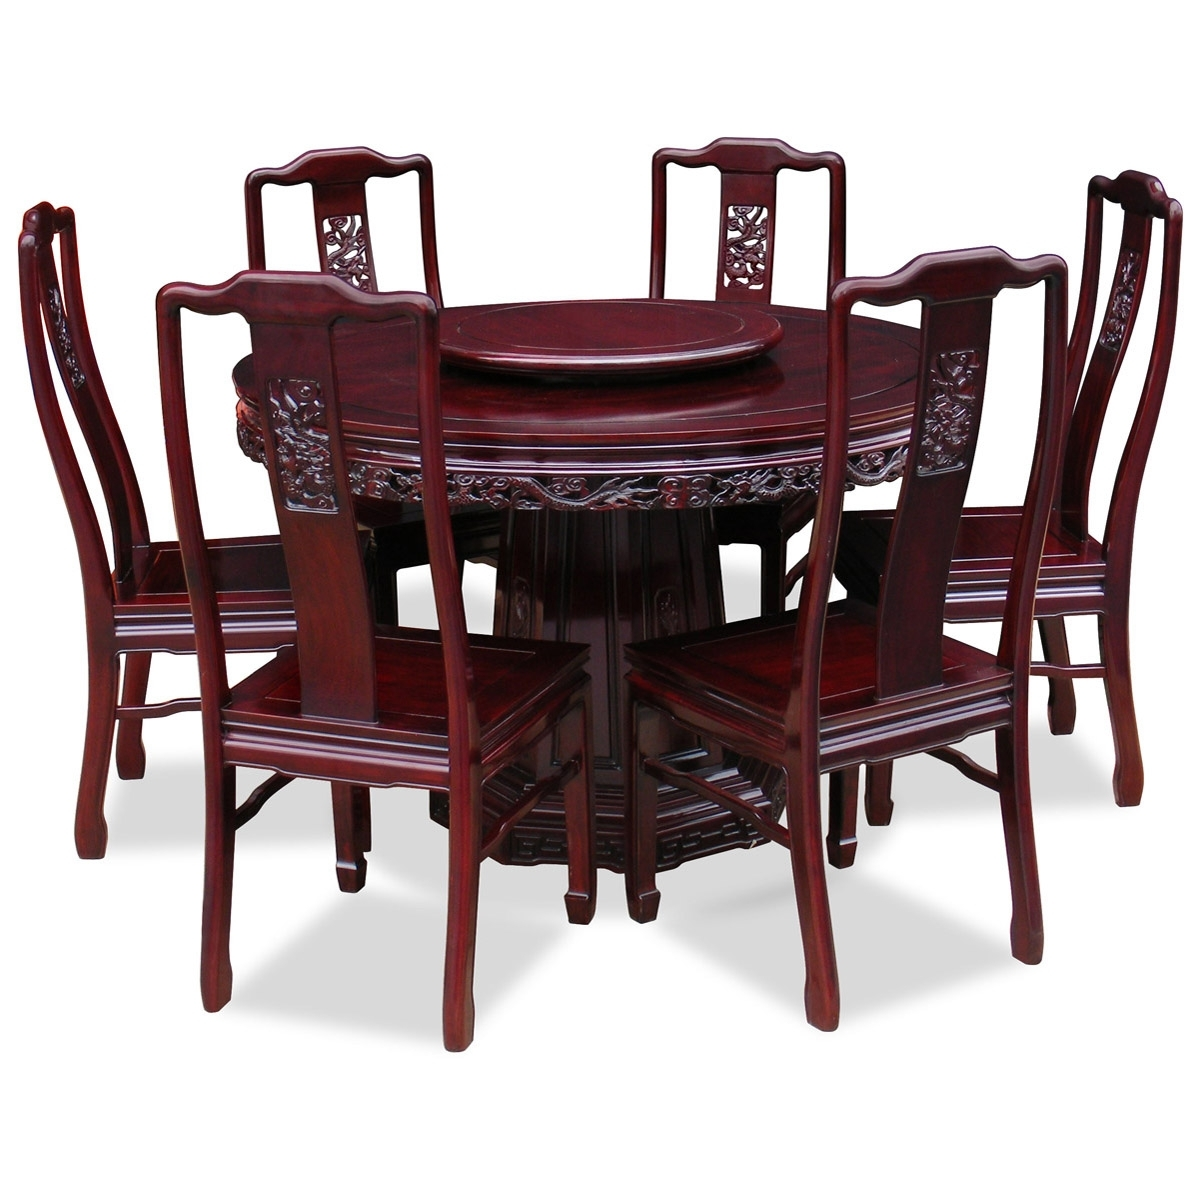 Asian Dining Tables Throughout Most Current 48In Rosewood Dragon Design Round Dining Table With 6 Chairs (View 4 of 25)